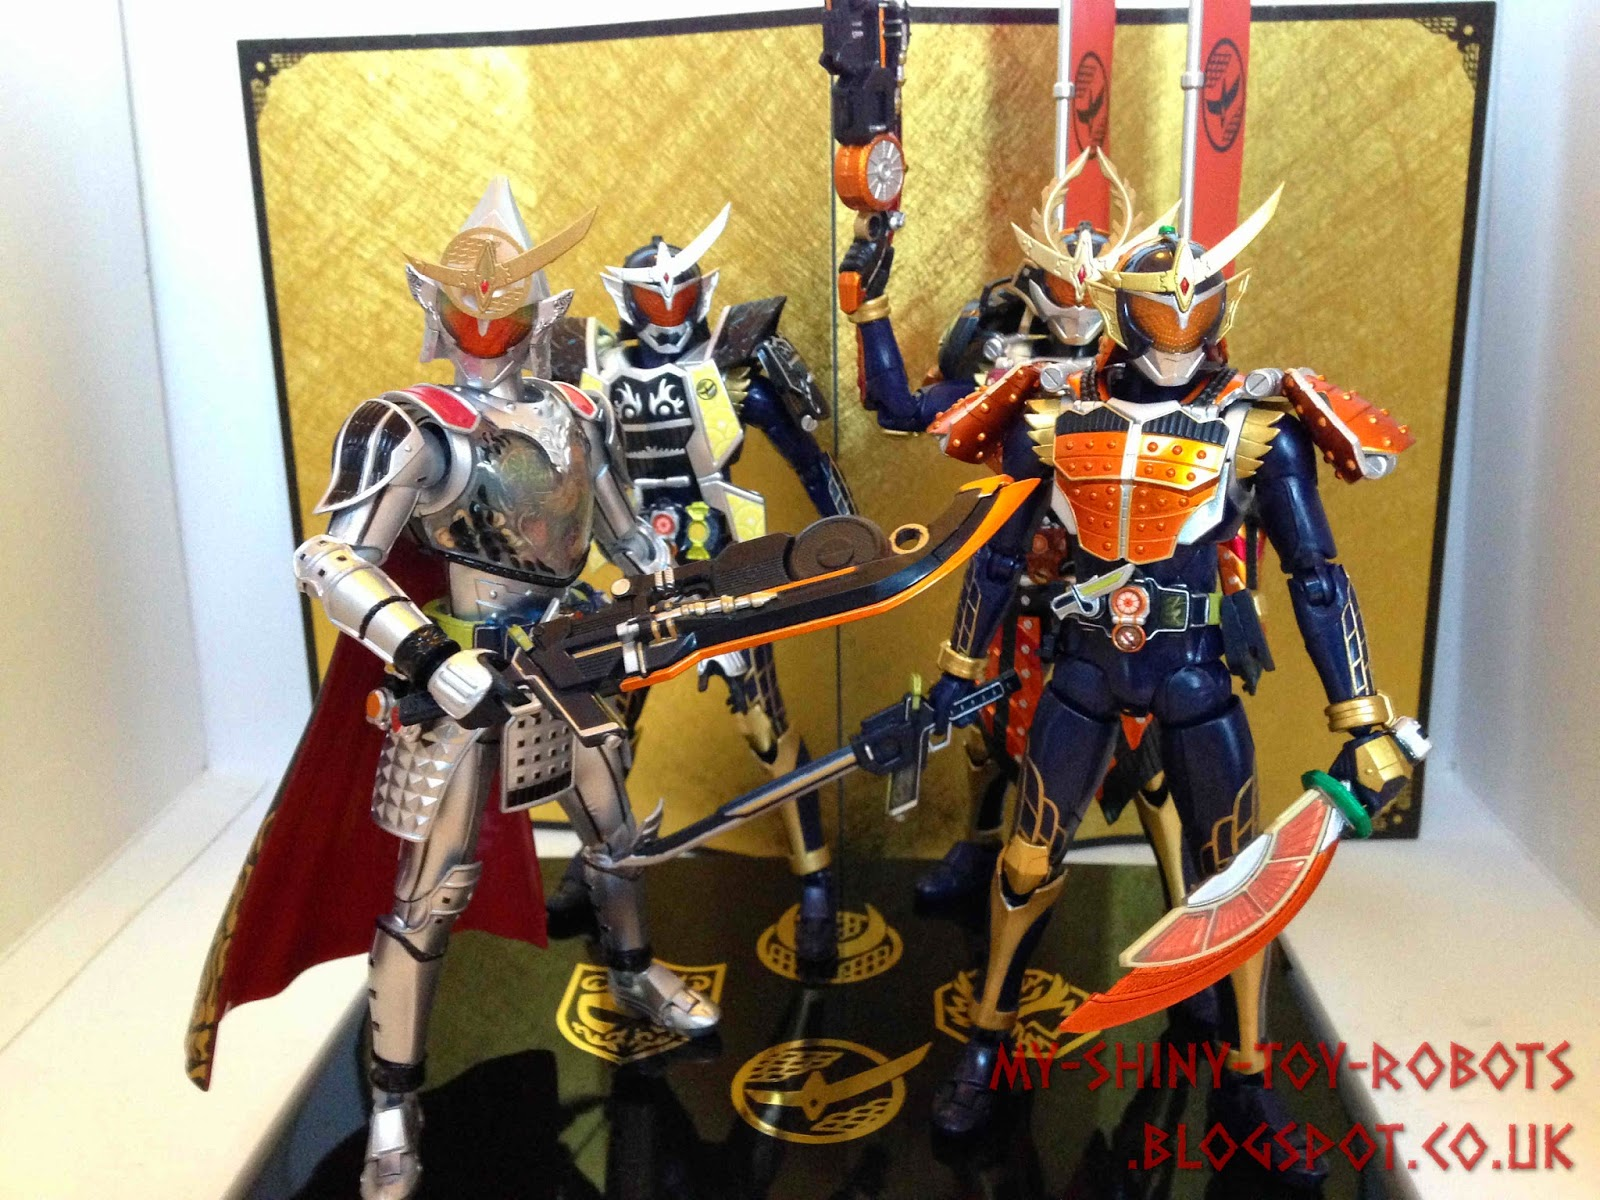 Gaim's 4 main forms together